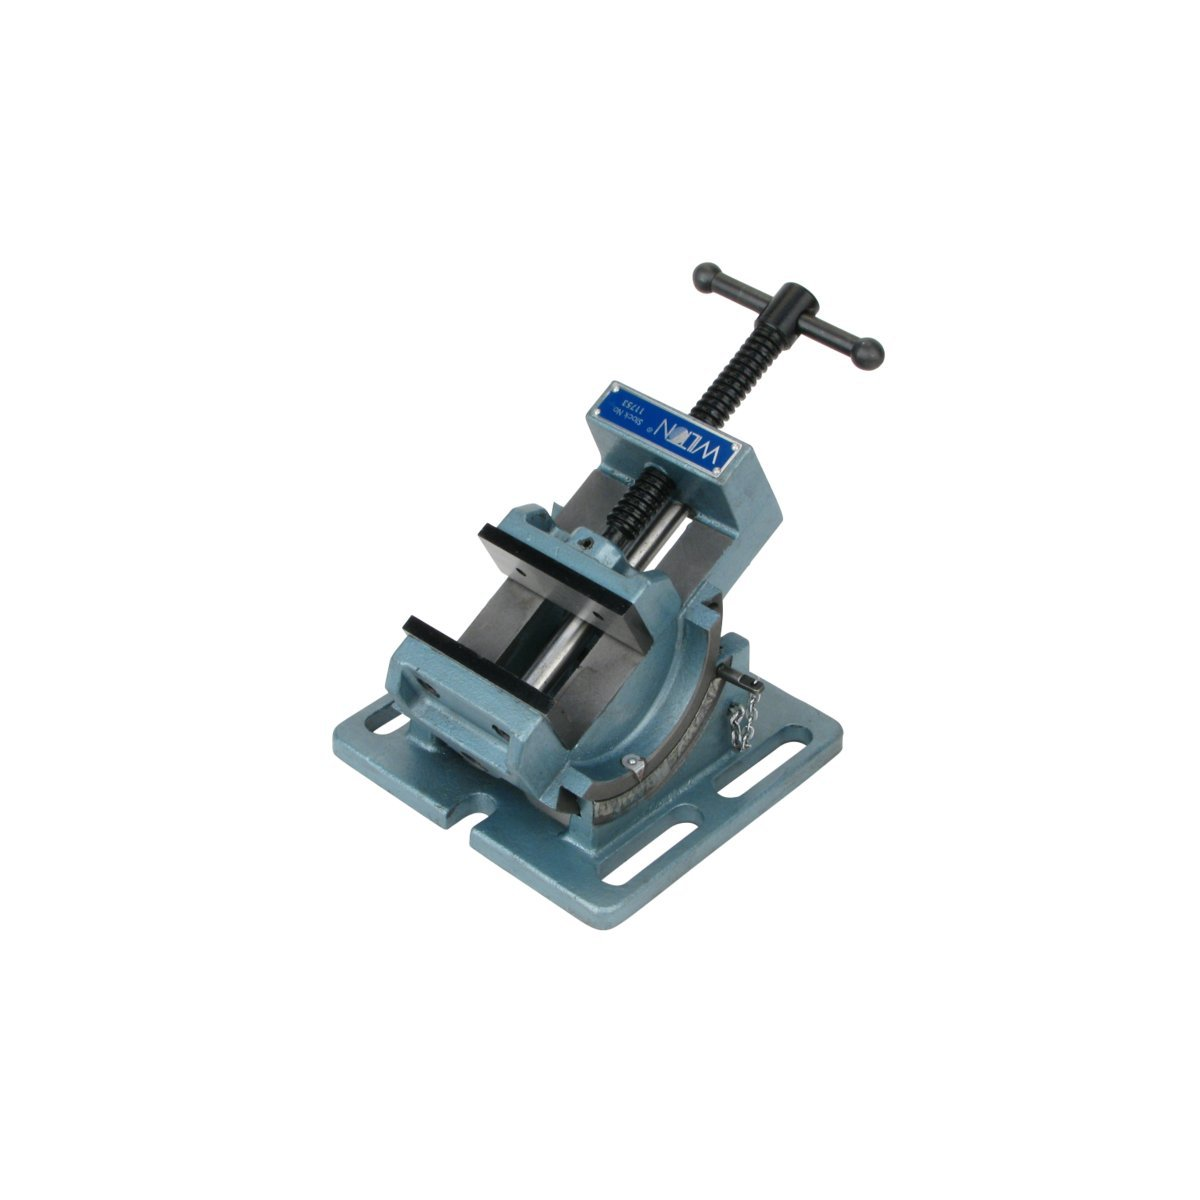 Wilton 11753 3-Inch Cradle Style Angle Drill Press Vise